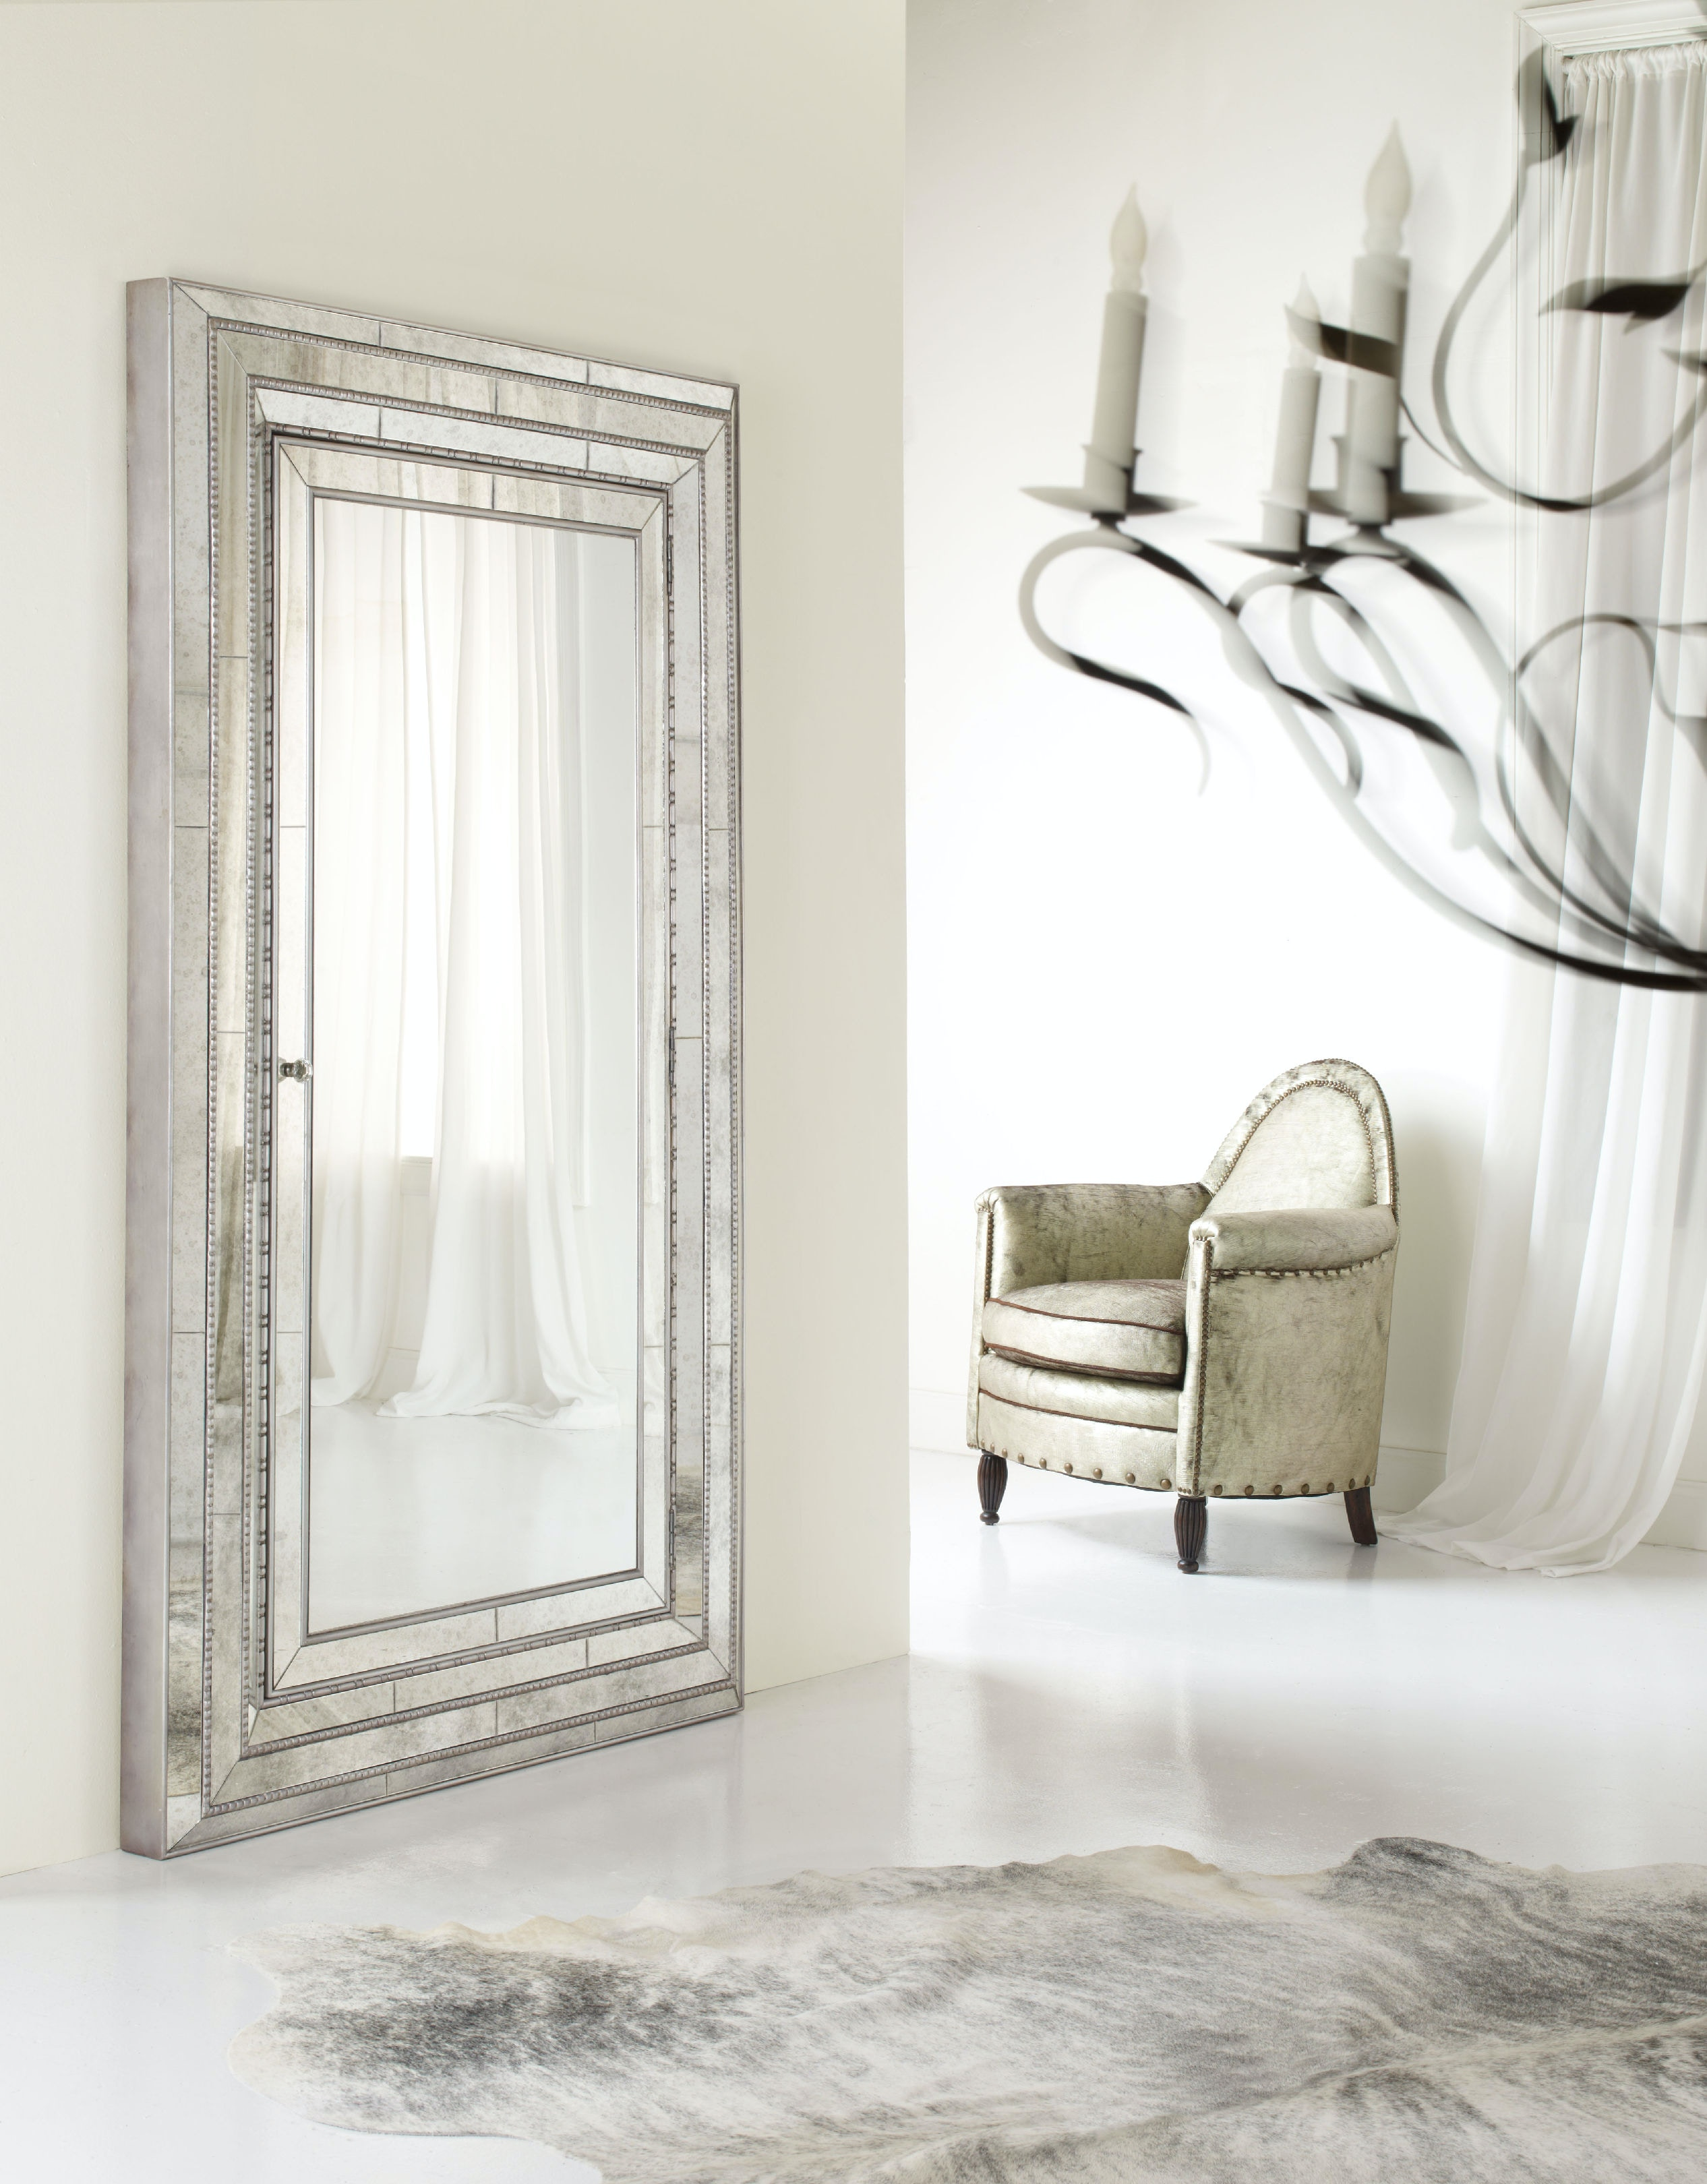 ... Glamour Floor Mirror W/Jewelry Armoire Storage Is Available In The  Princeton, Woodbridge And Rockaway, NJ Area From Home Inspirations  Thomasville.